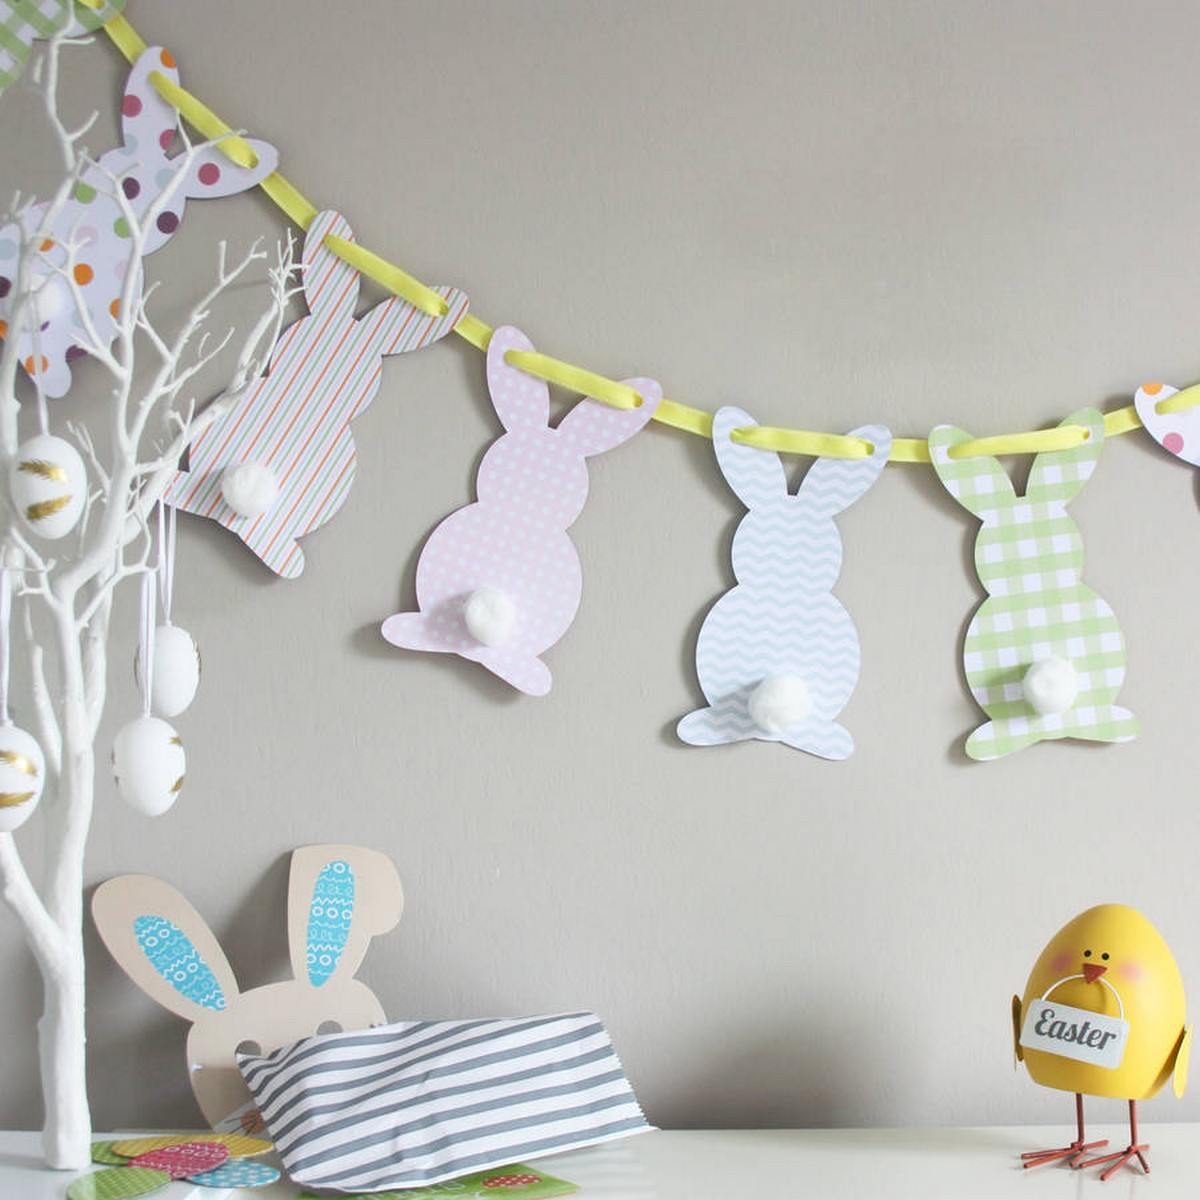 We can't imagine celebrating Easter without one or two of those little critters. So if you also want to decorate your home with Easter rabbits, take your pick from this list.